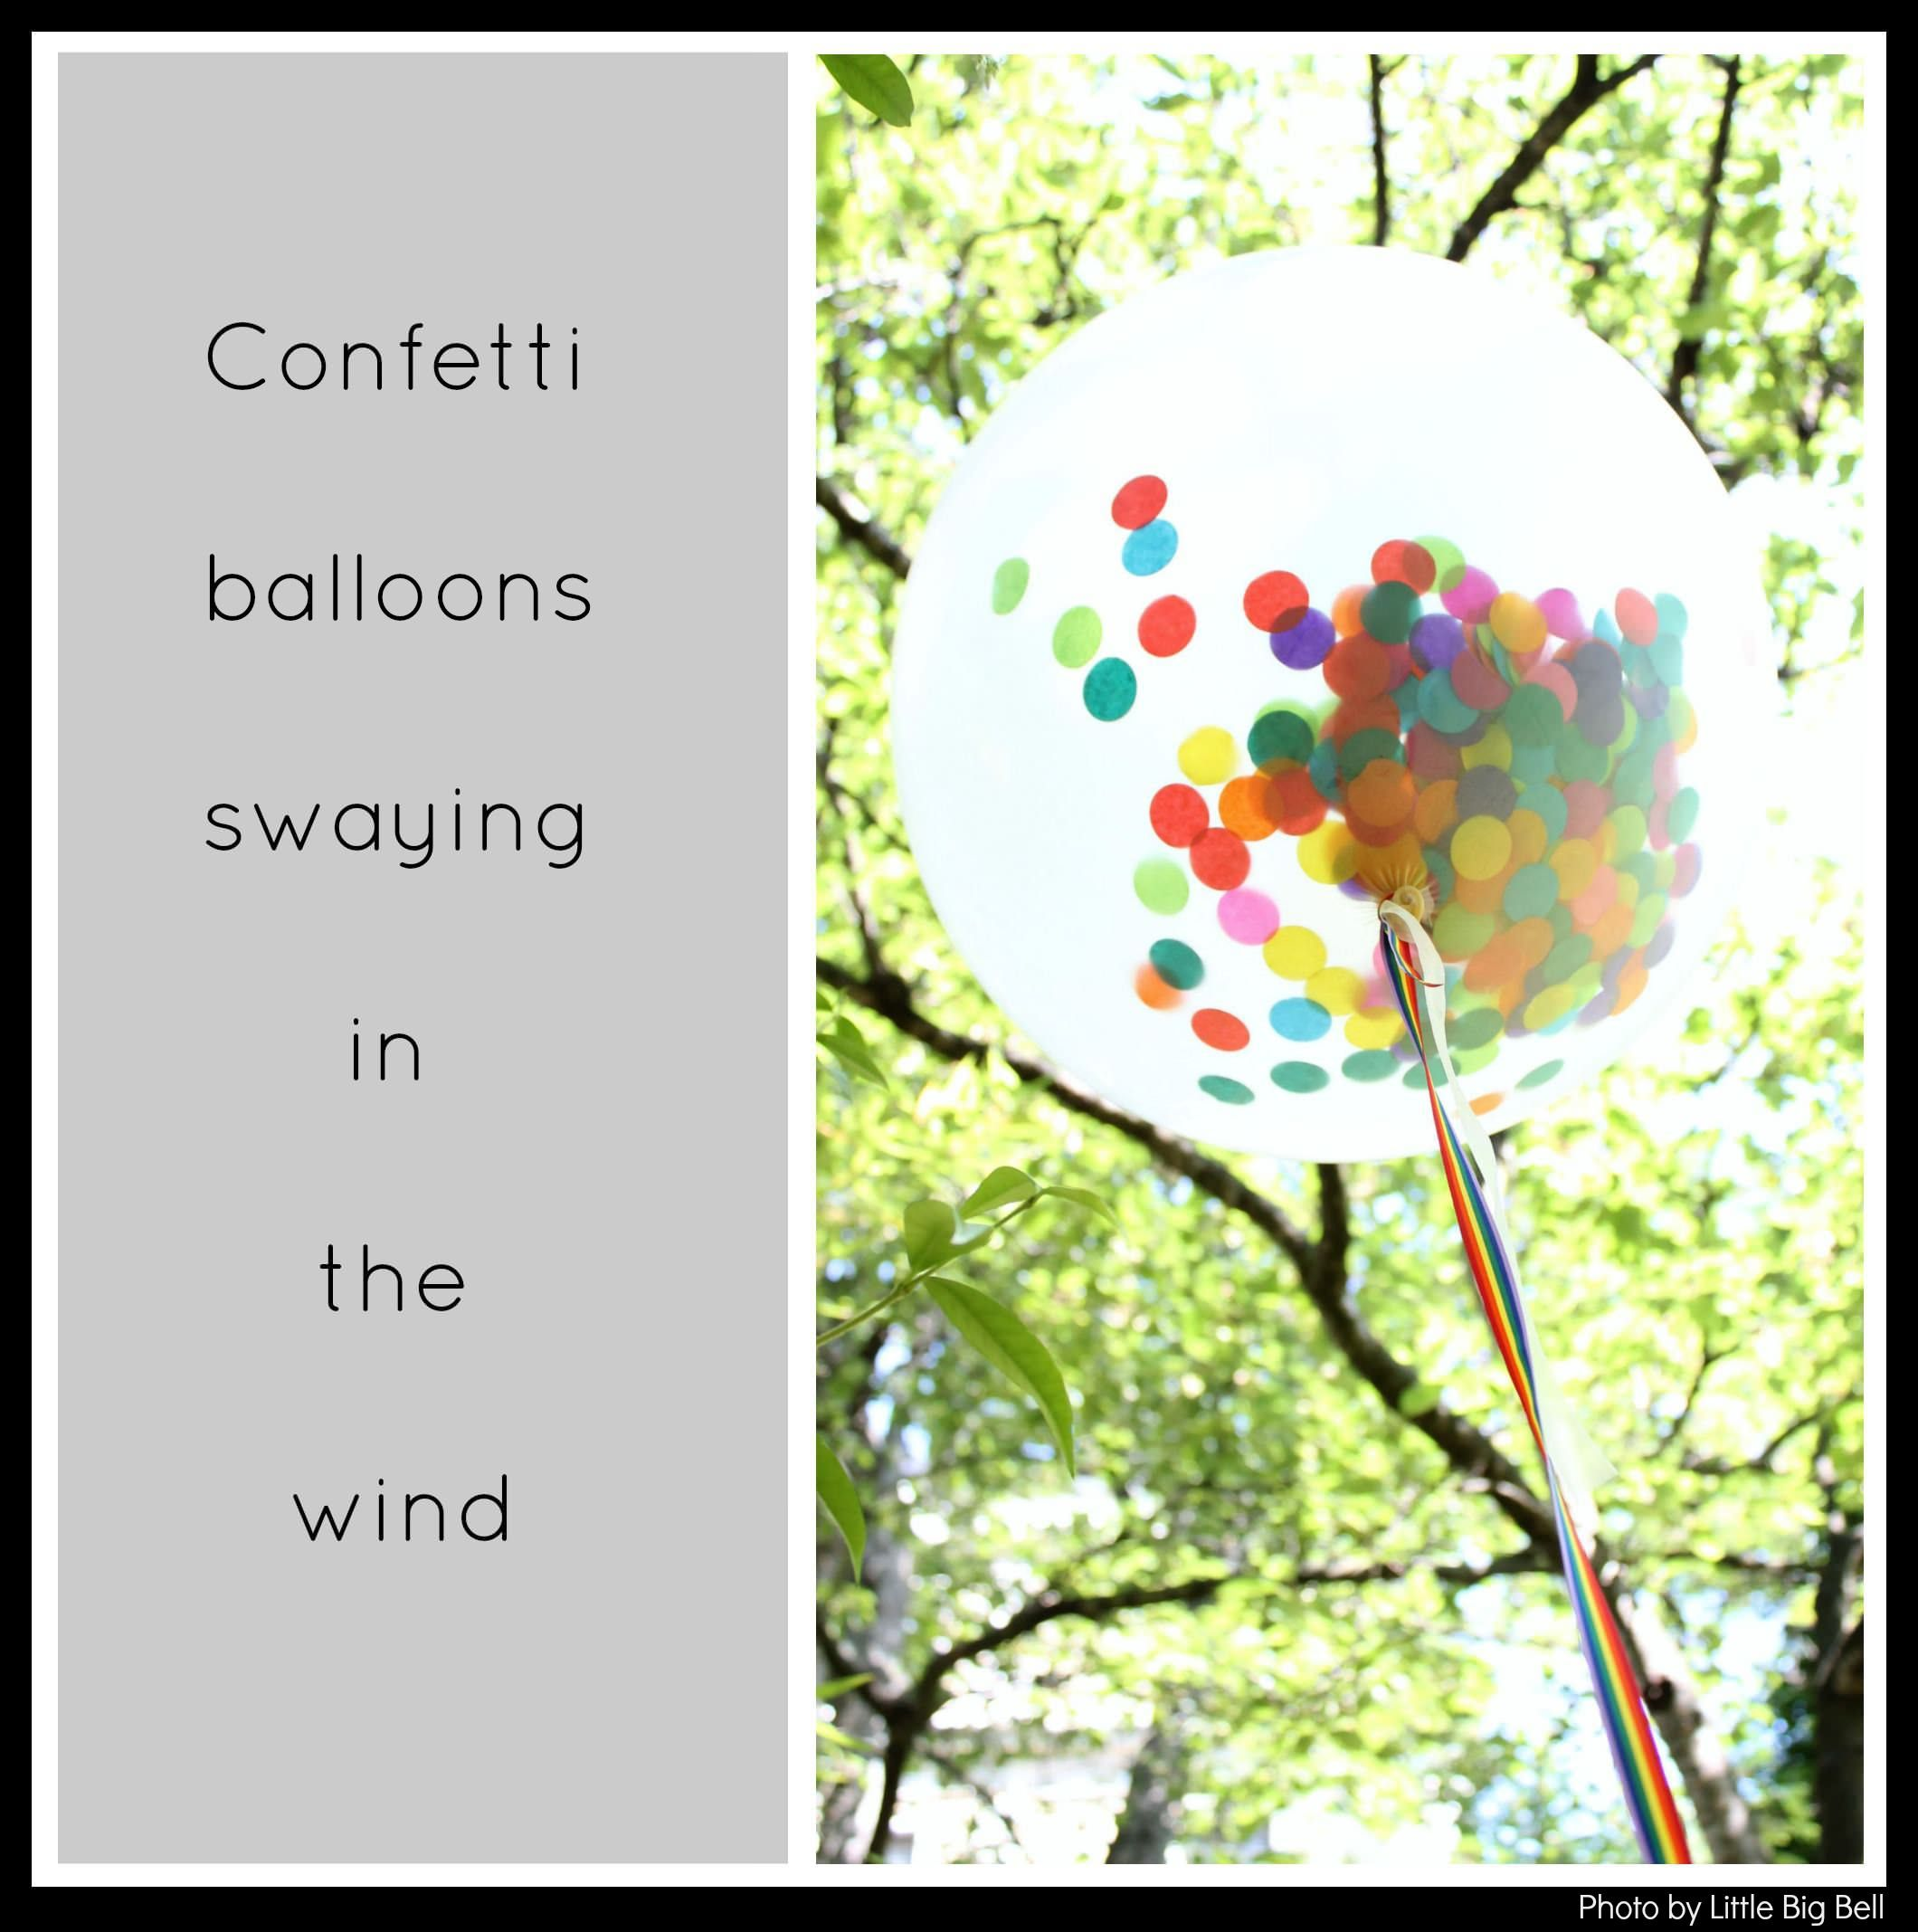 Confetti-balloon-rainbow-party-photo-by-Little-Big-Bell.jpg.jpg